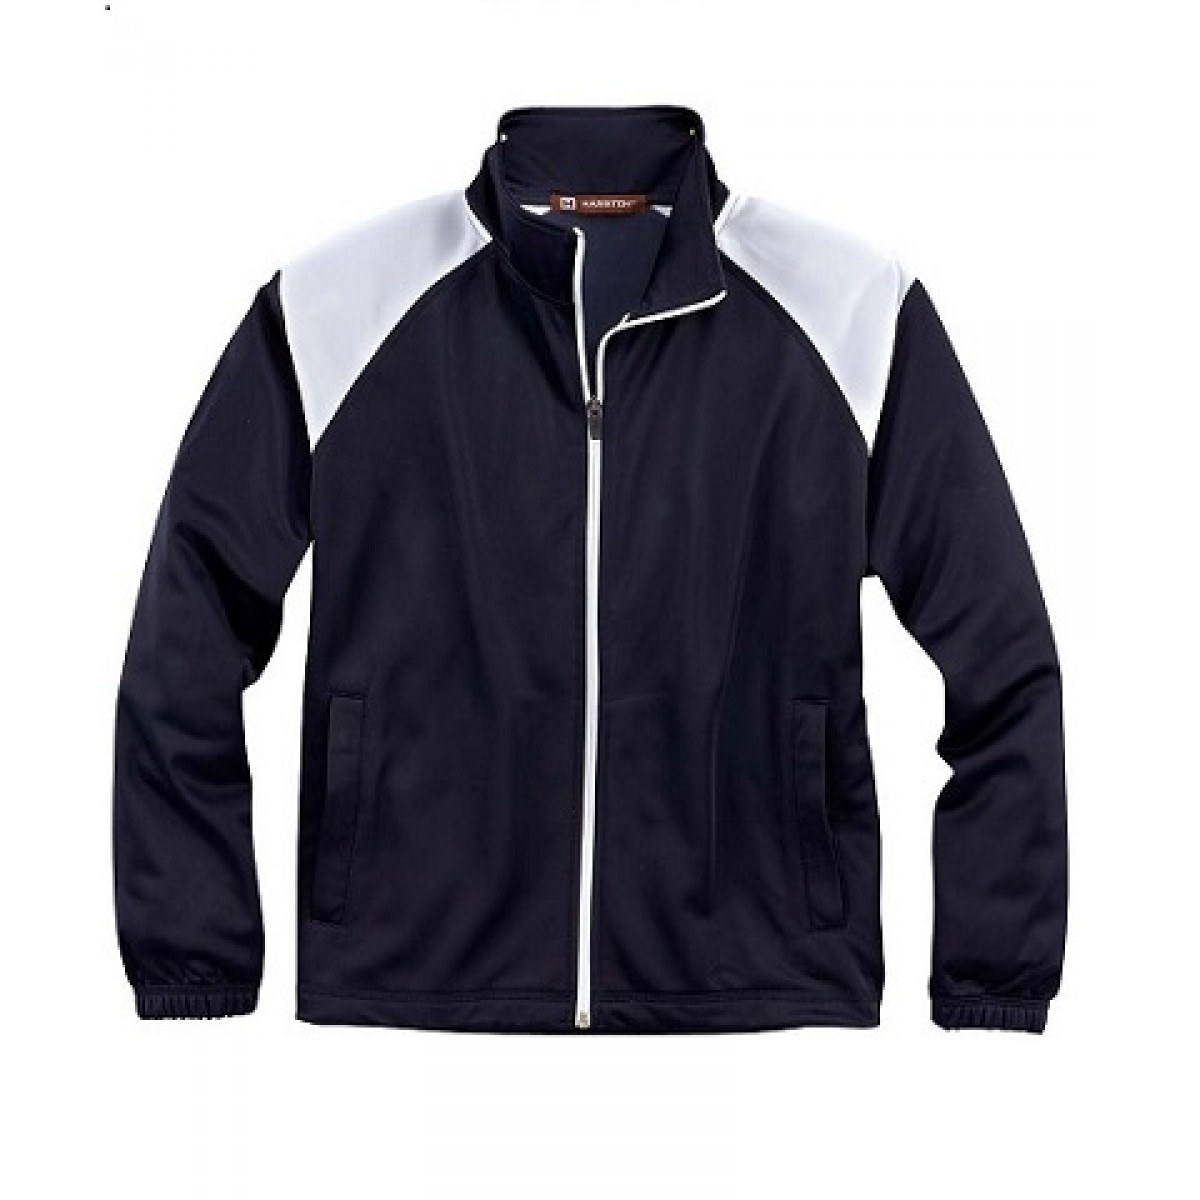 Embroidered Navy Tricot Track Jacket-Navy-XL